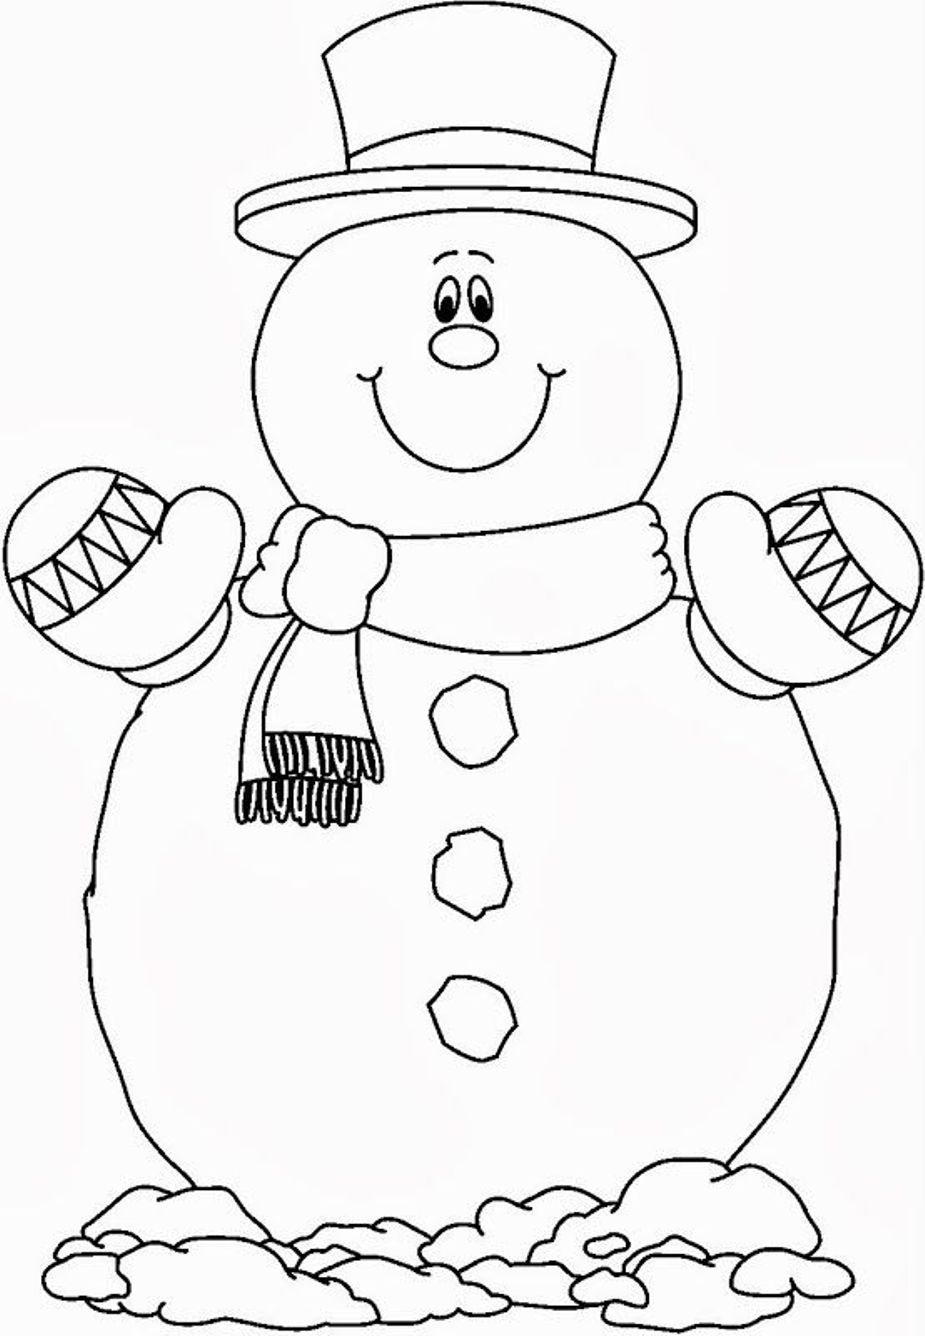 Snowmen Coloring Pages Coloring Ideas Frosty The Snowman Coloring Pages Phenomenal Ideas